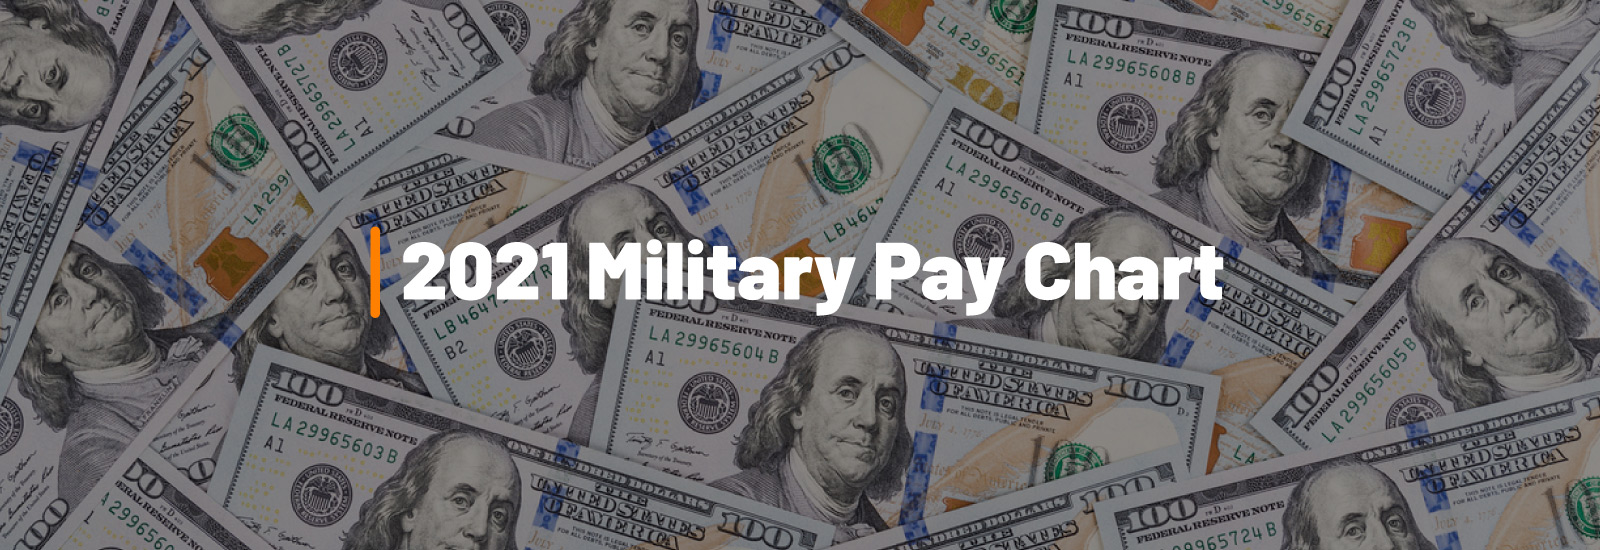 2021 Military Pay Chart